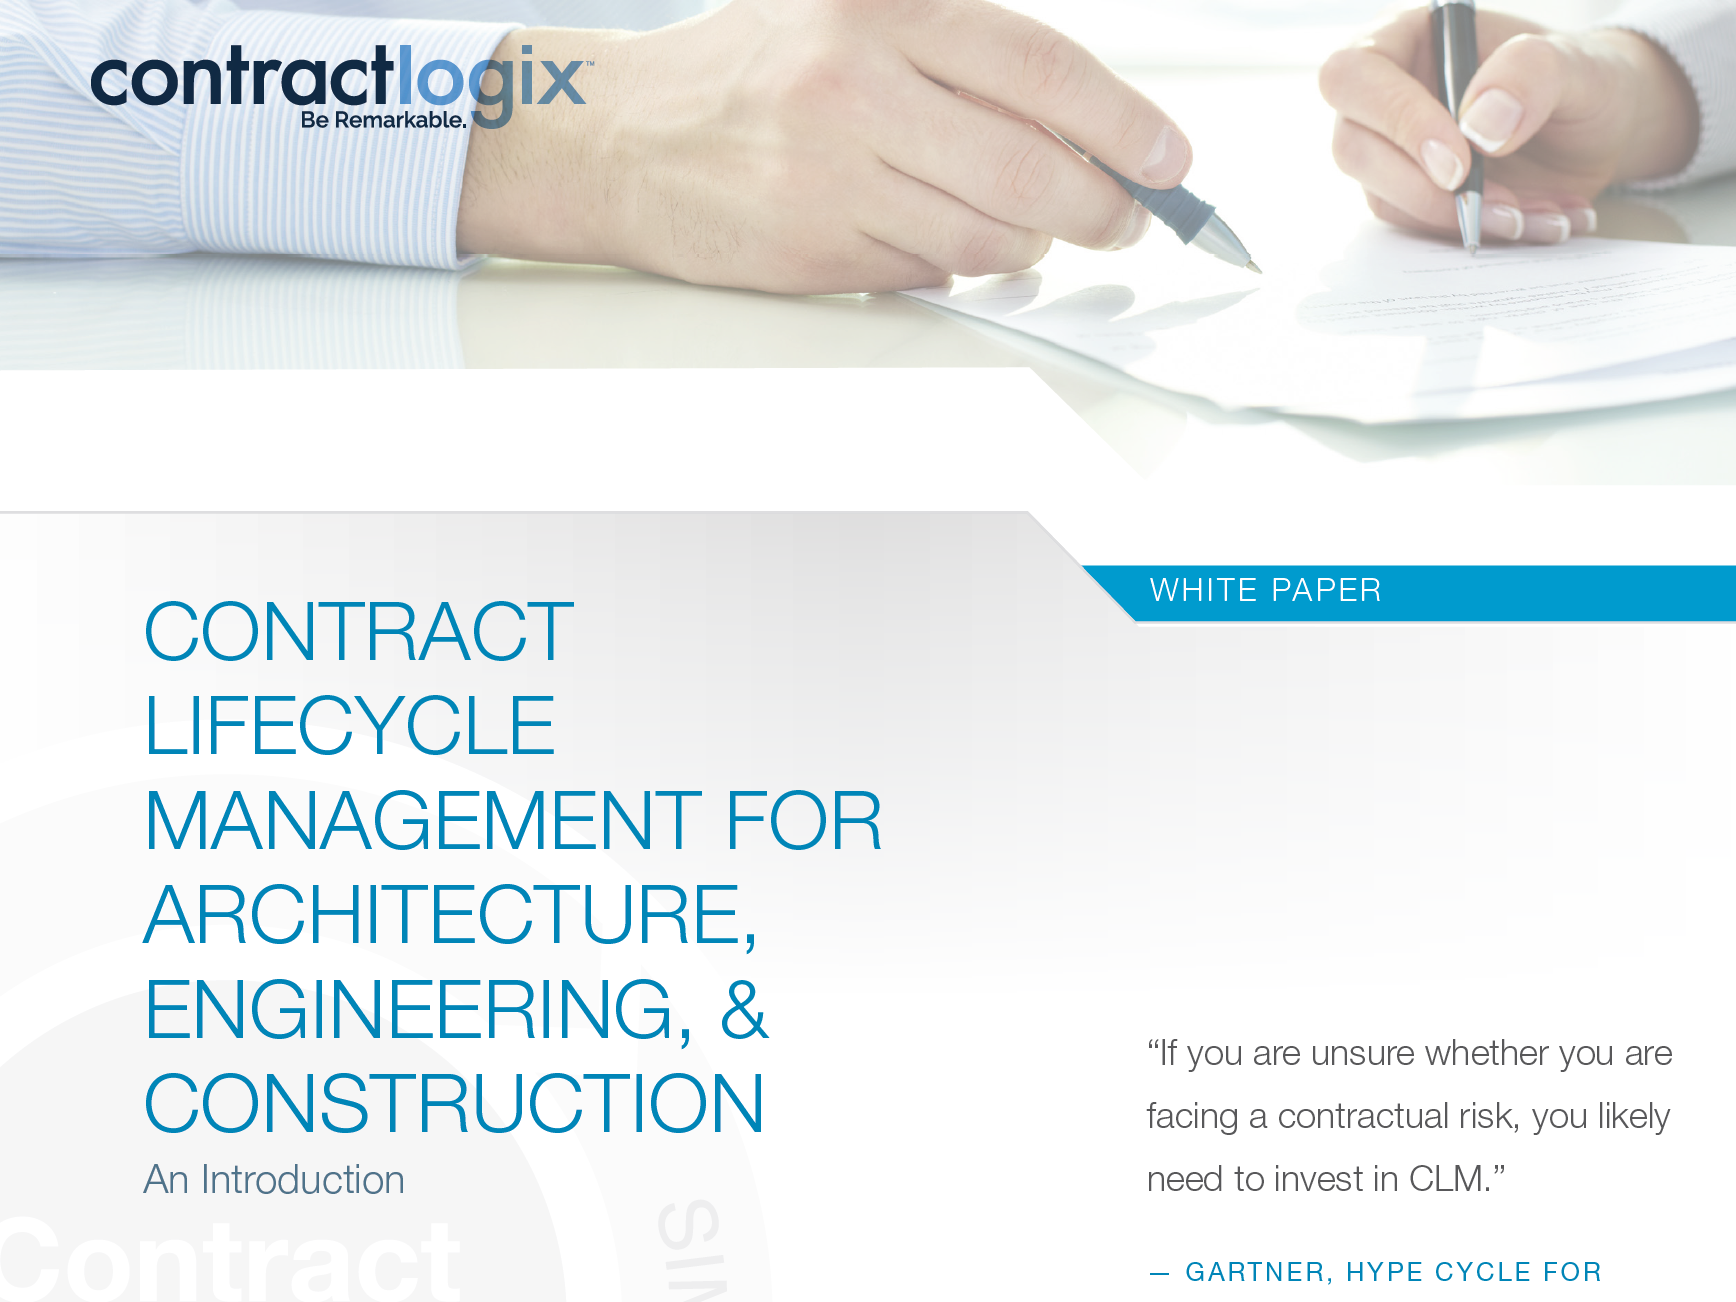 CLM for Architecture, Engineering, & Construction